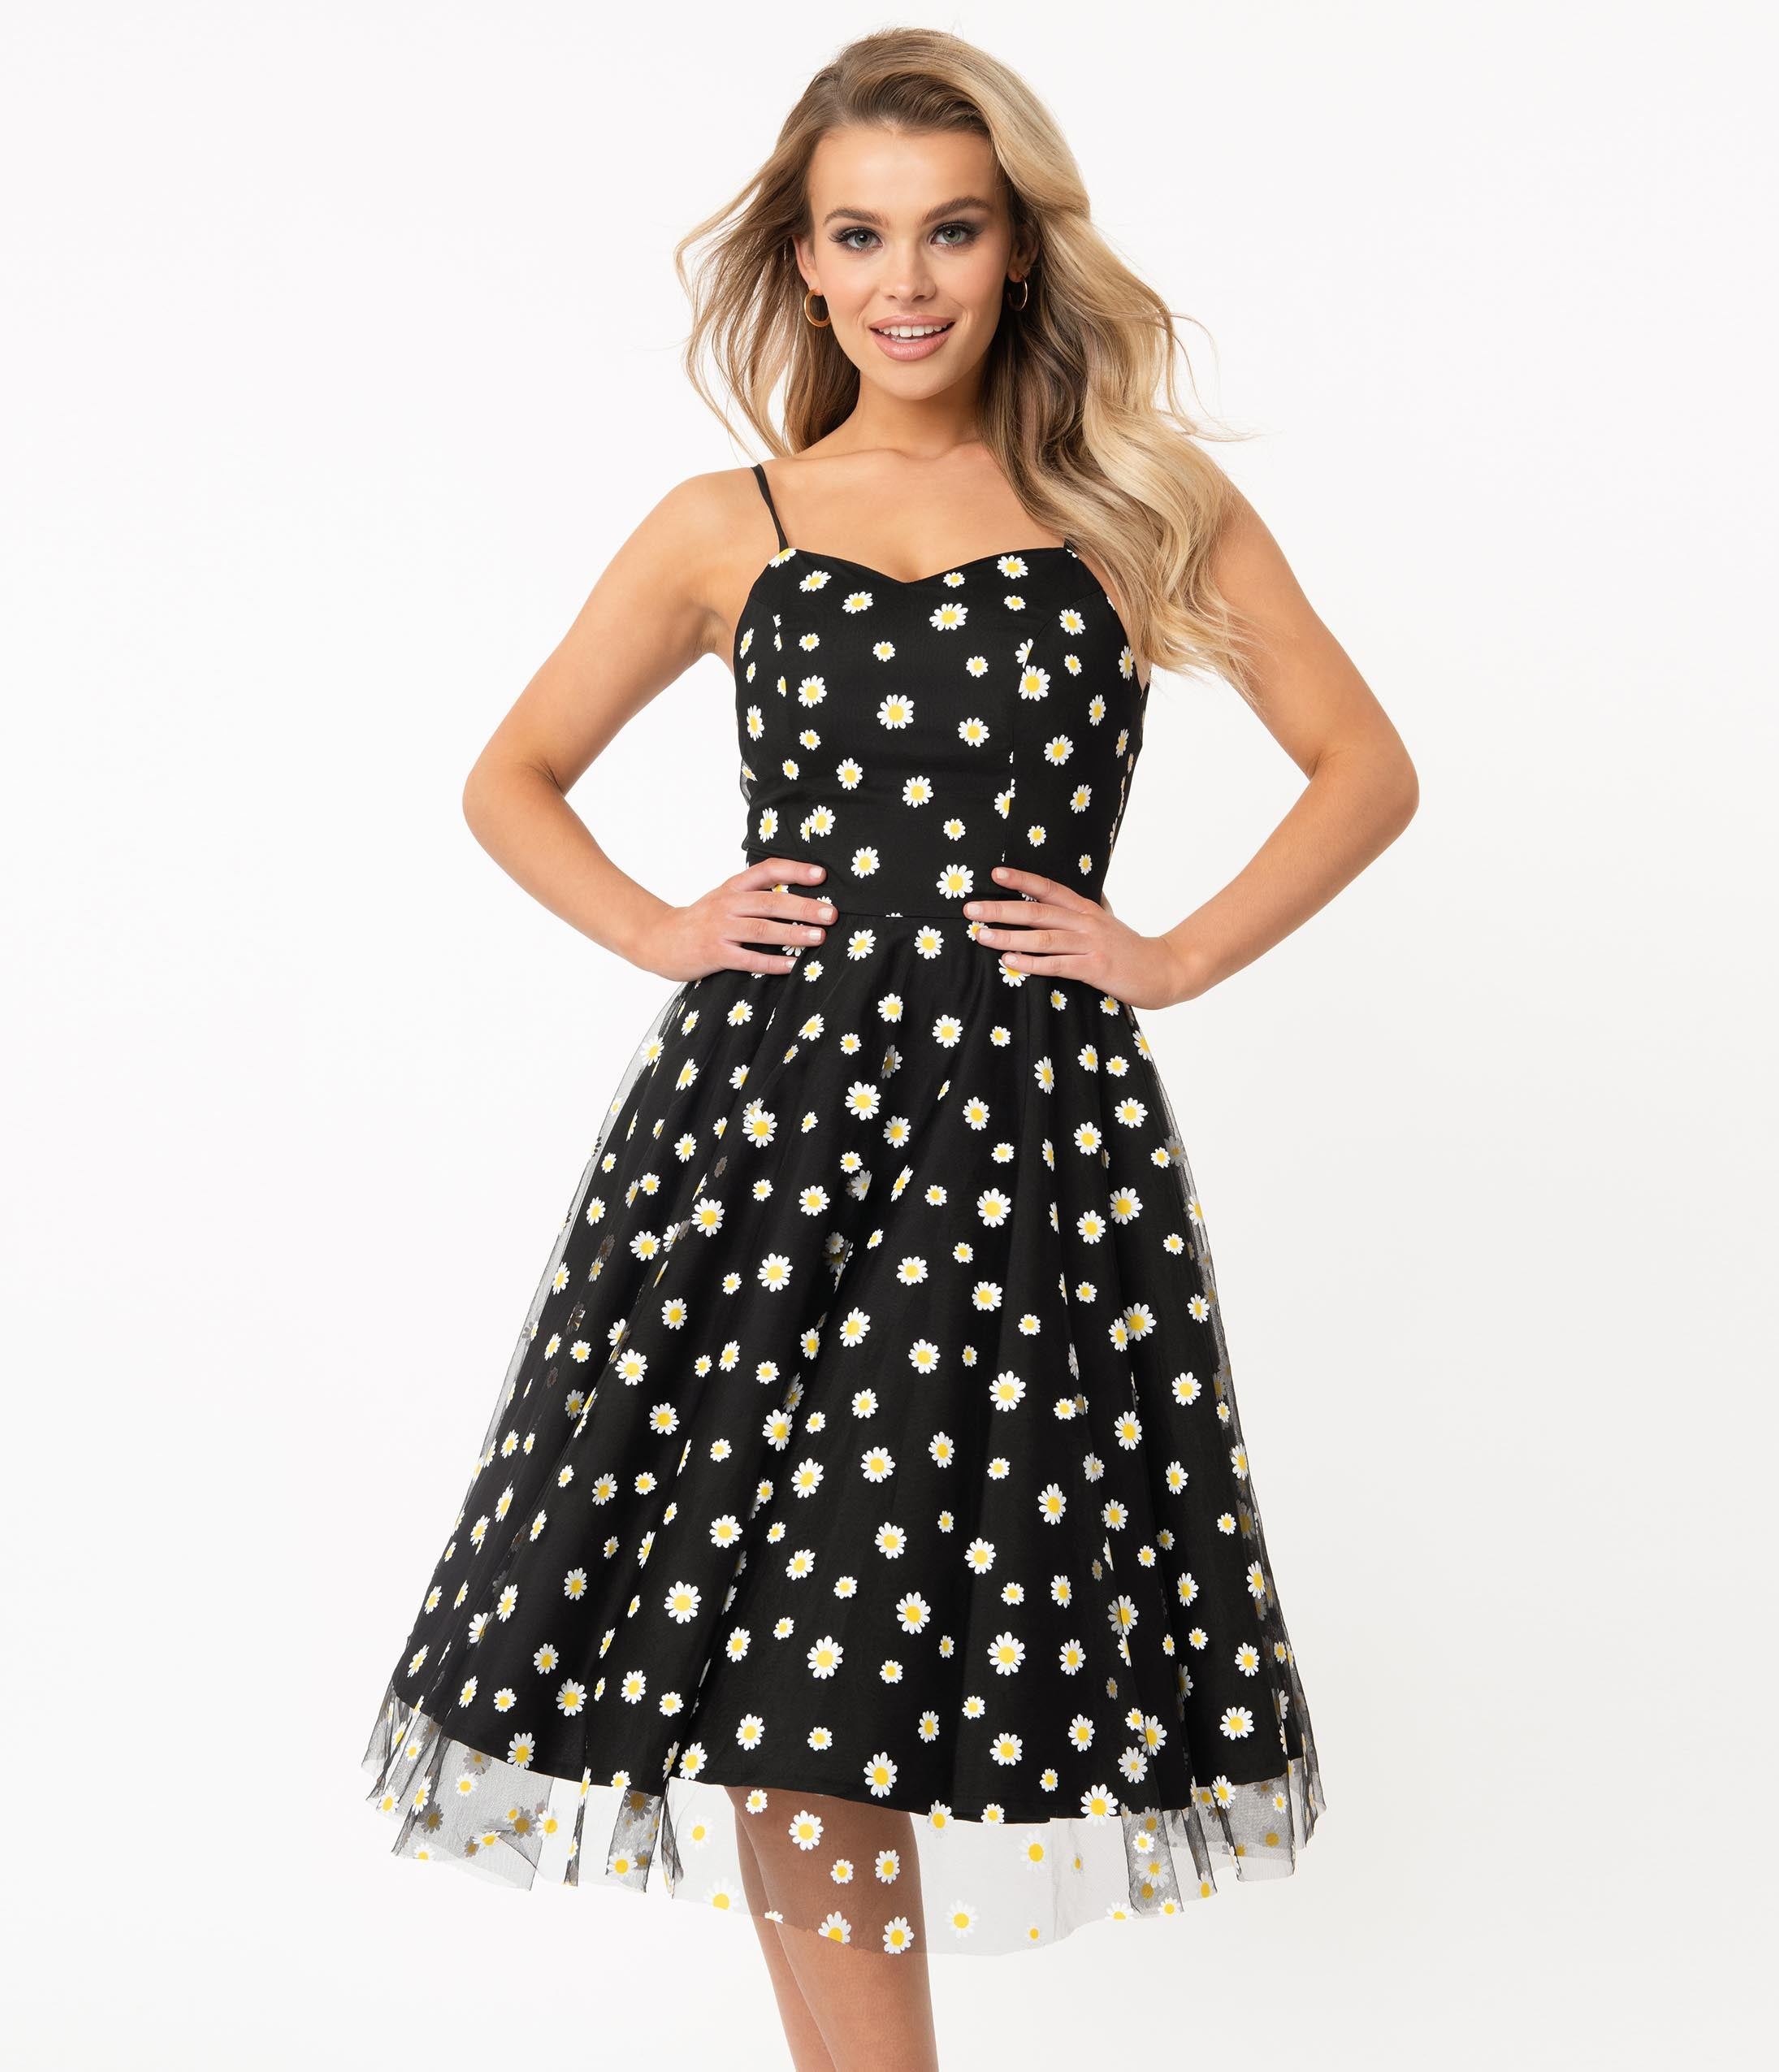 1950s Cocktail Dresses, Party Dresses 1950S Style Black  White Daisy Print Ray Swing Dress $88.00 AT vintagedancer.com